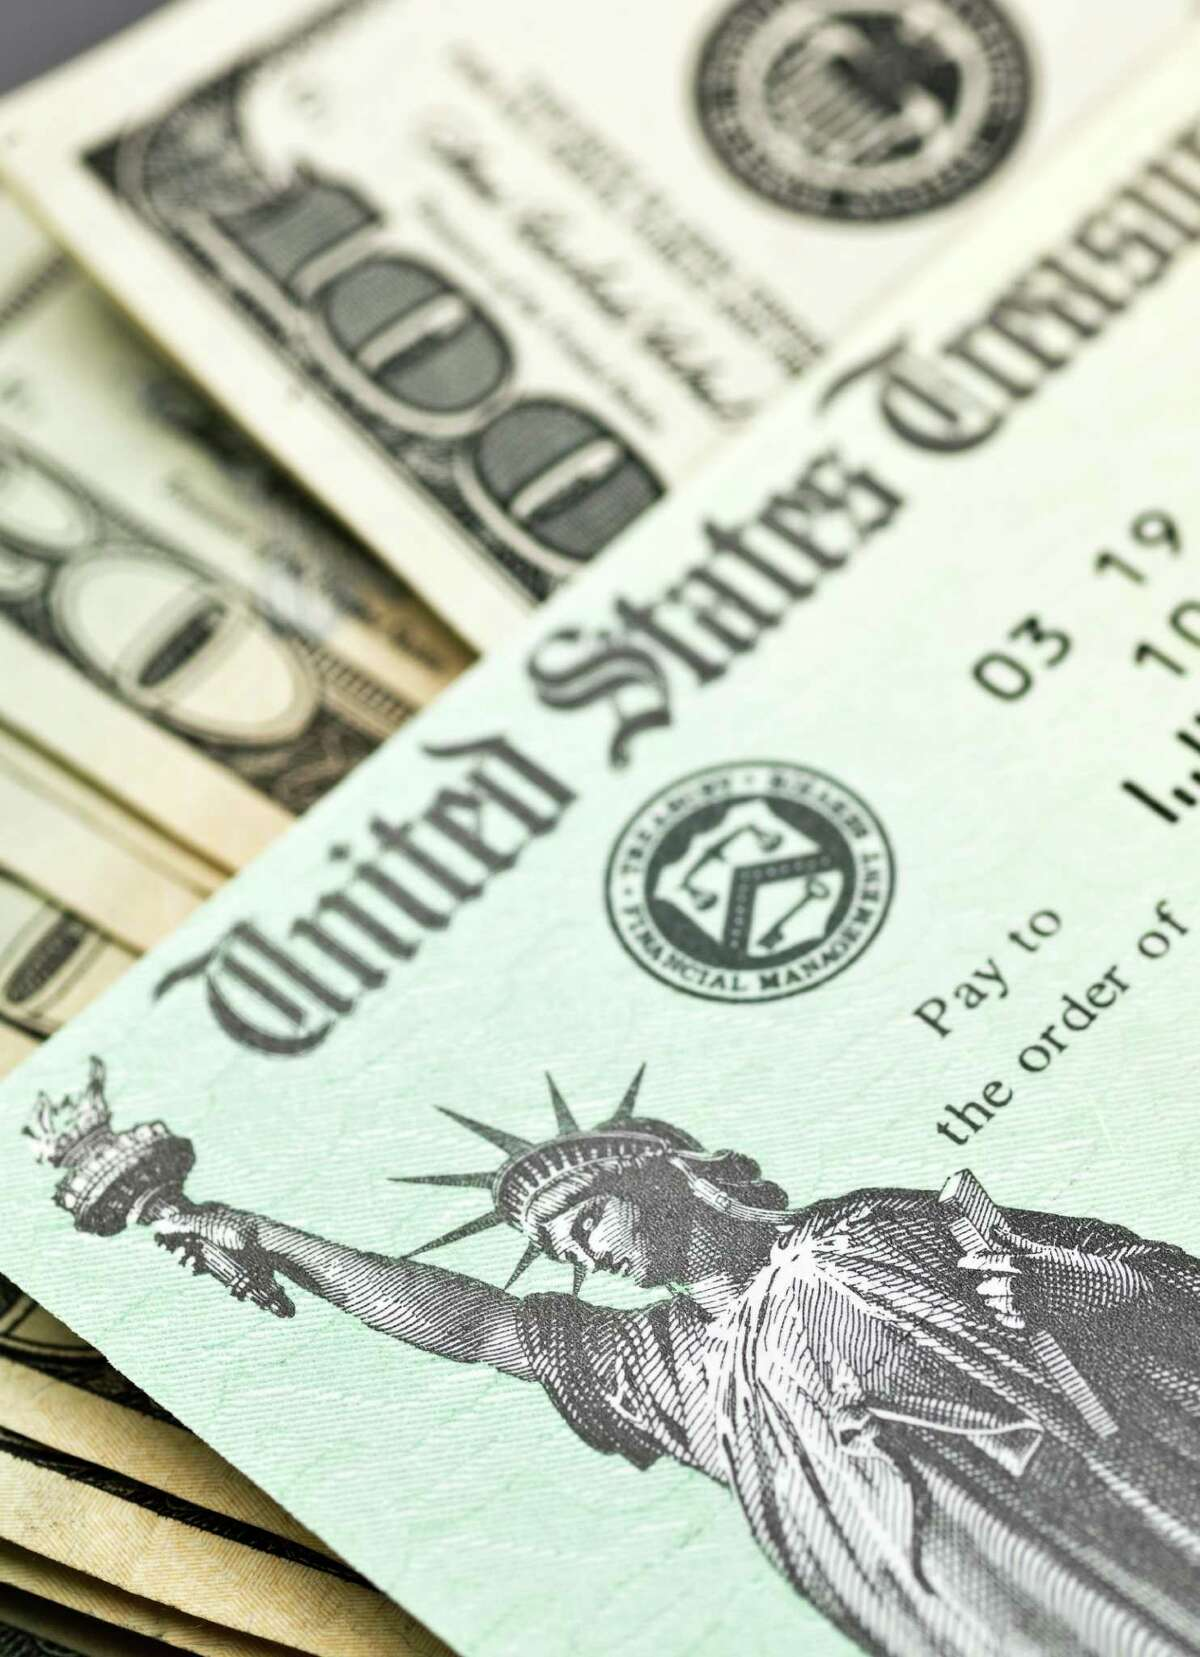 The average federal income tax refund was $2,790 as of March 29. So what does $3,000 get you in 2013, anyway? Here's a list:By Jessica Belasco, Staff Writer. Contributors: Michael Quintanilla, René Guzman, Hector Saldaña, Karen Haram, Edmund Tijerina, Jim Beal, Richard A. Marini, Stefanie Arias. Slideshow compiled by Merrisa Brown, mySA.com.